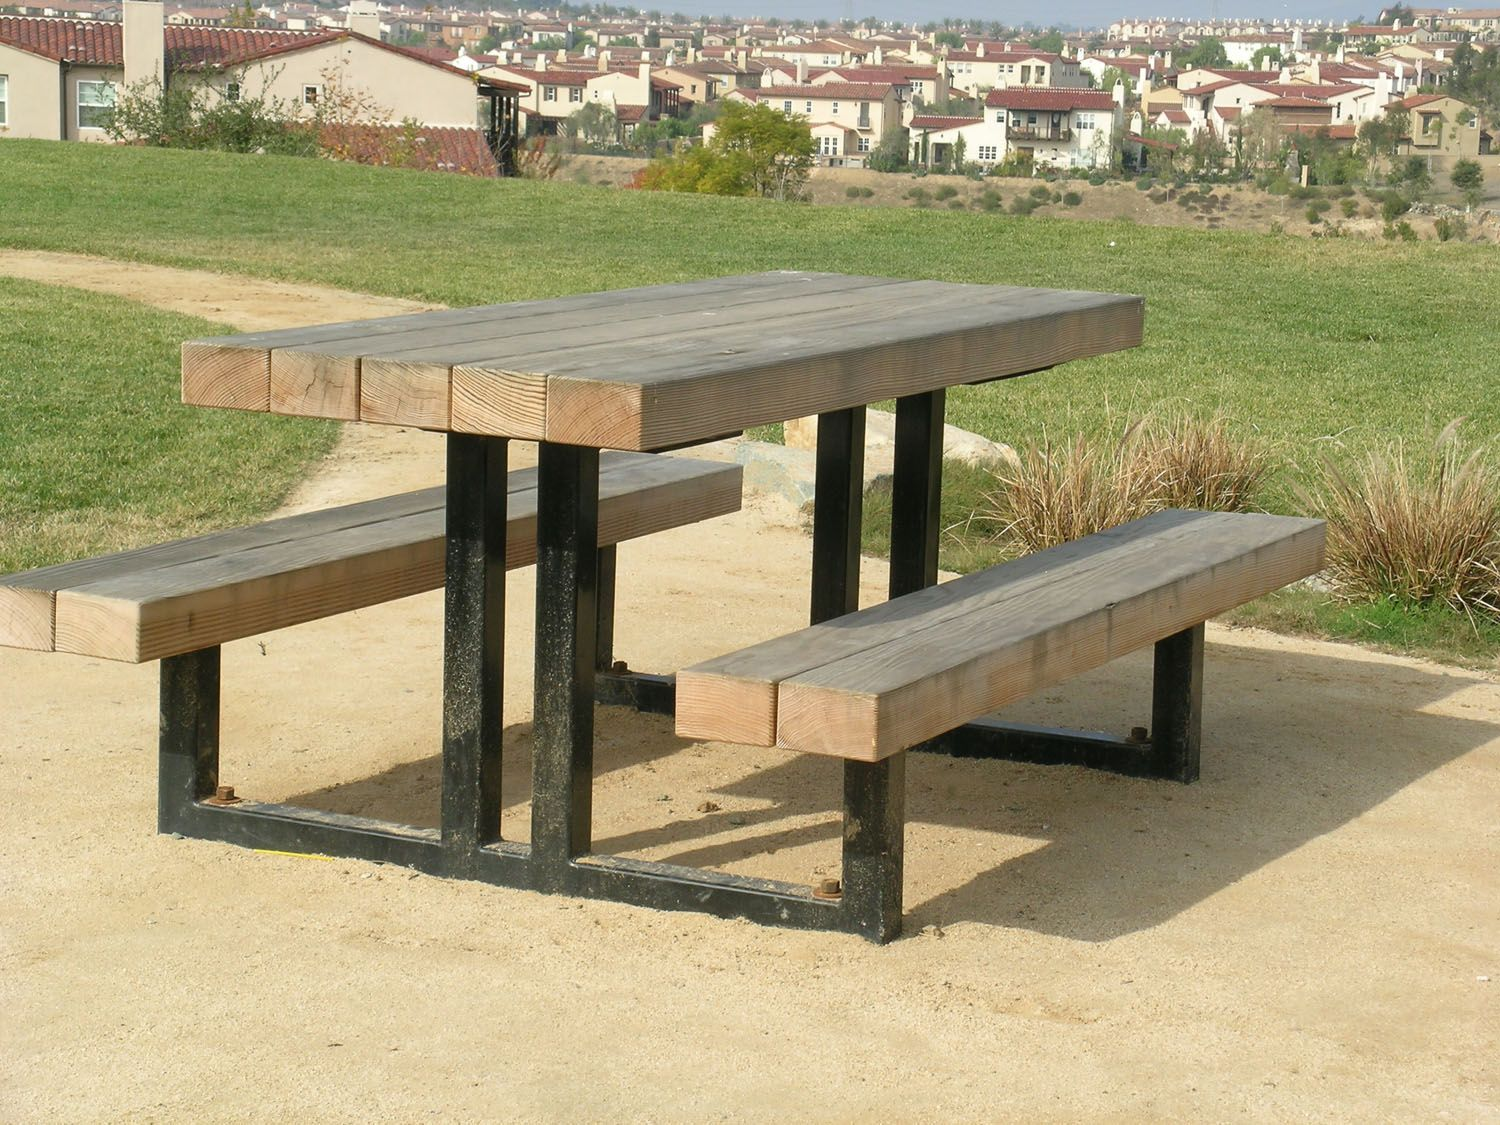 Metal Frame Picnic Table 8HU9   cnxconsortium org   Outdoor     Metal Frame Picnic Table 8HU9   cnxconsortium org   Outdoor Furniture